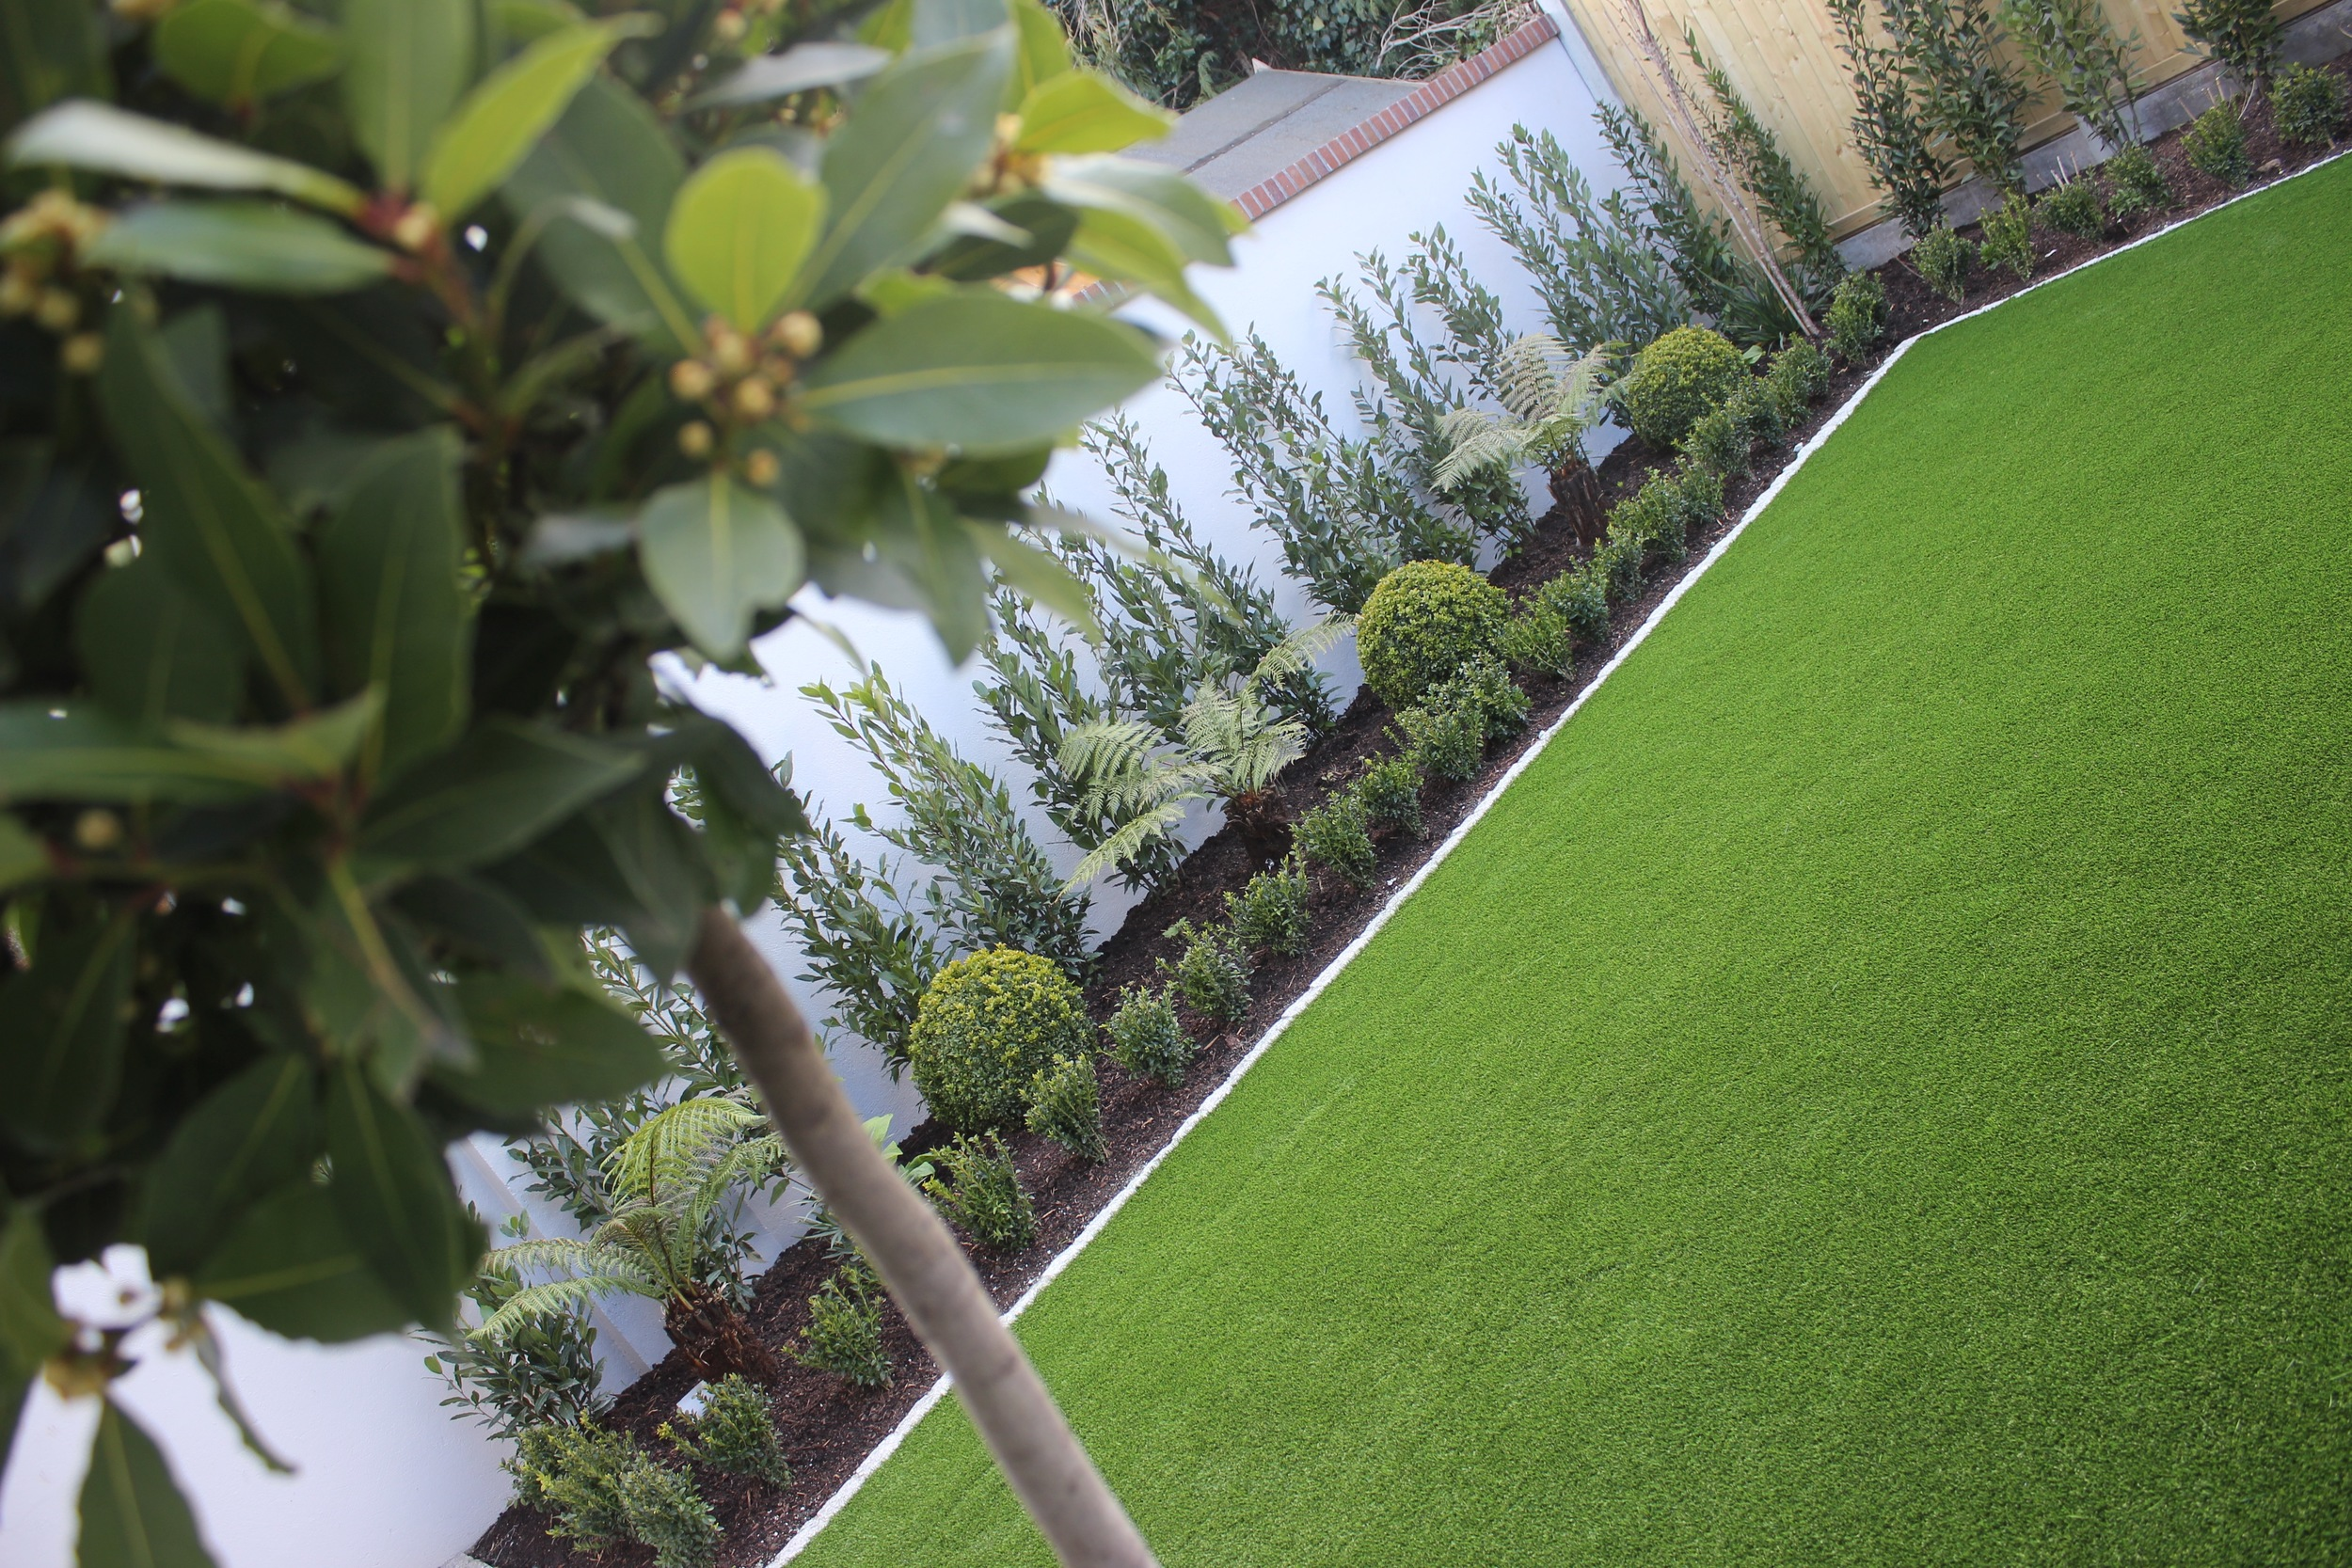 Bay tree and Lawn